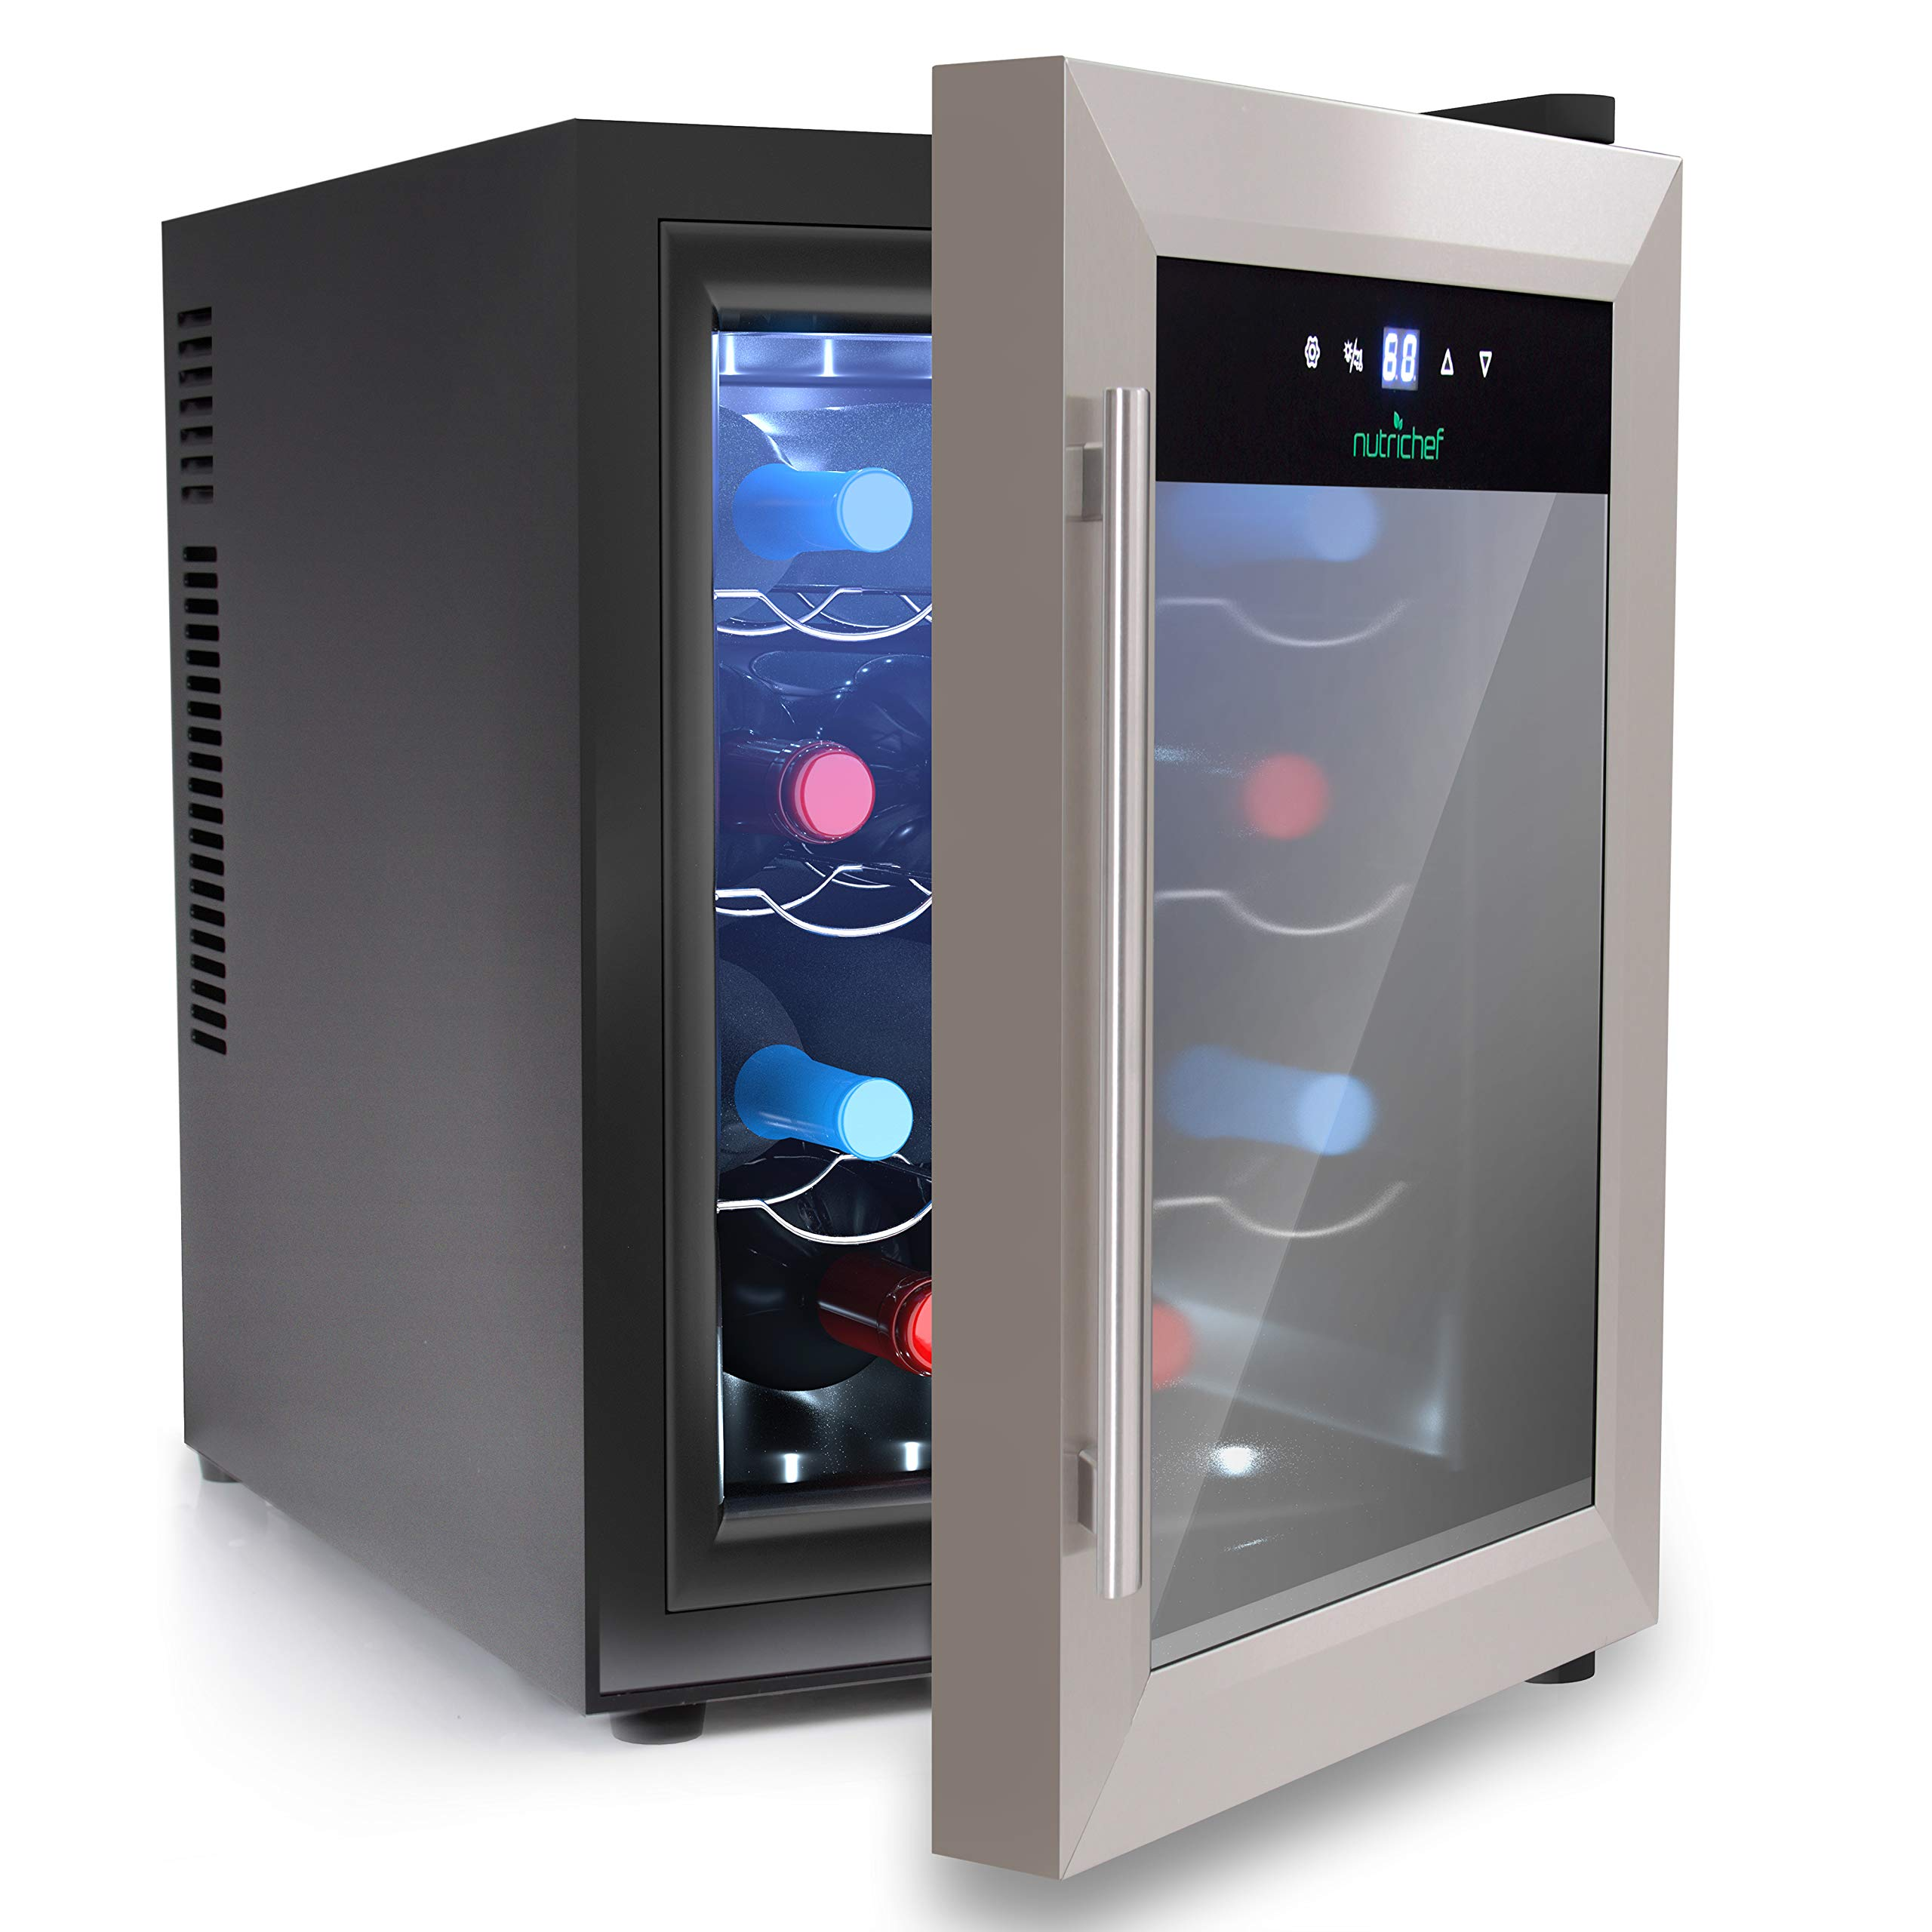 NutriChef 12 Bottle Thermoelectric Wine Cooler / Chiller | Counter Top Red And White Wine Cellar | FreeStanding Refrigerator, Quiet Operation Fridge | Stainless Steel - PKTEWC125 by Nutrichef